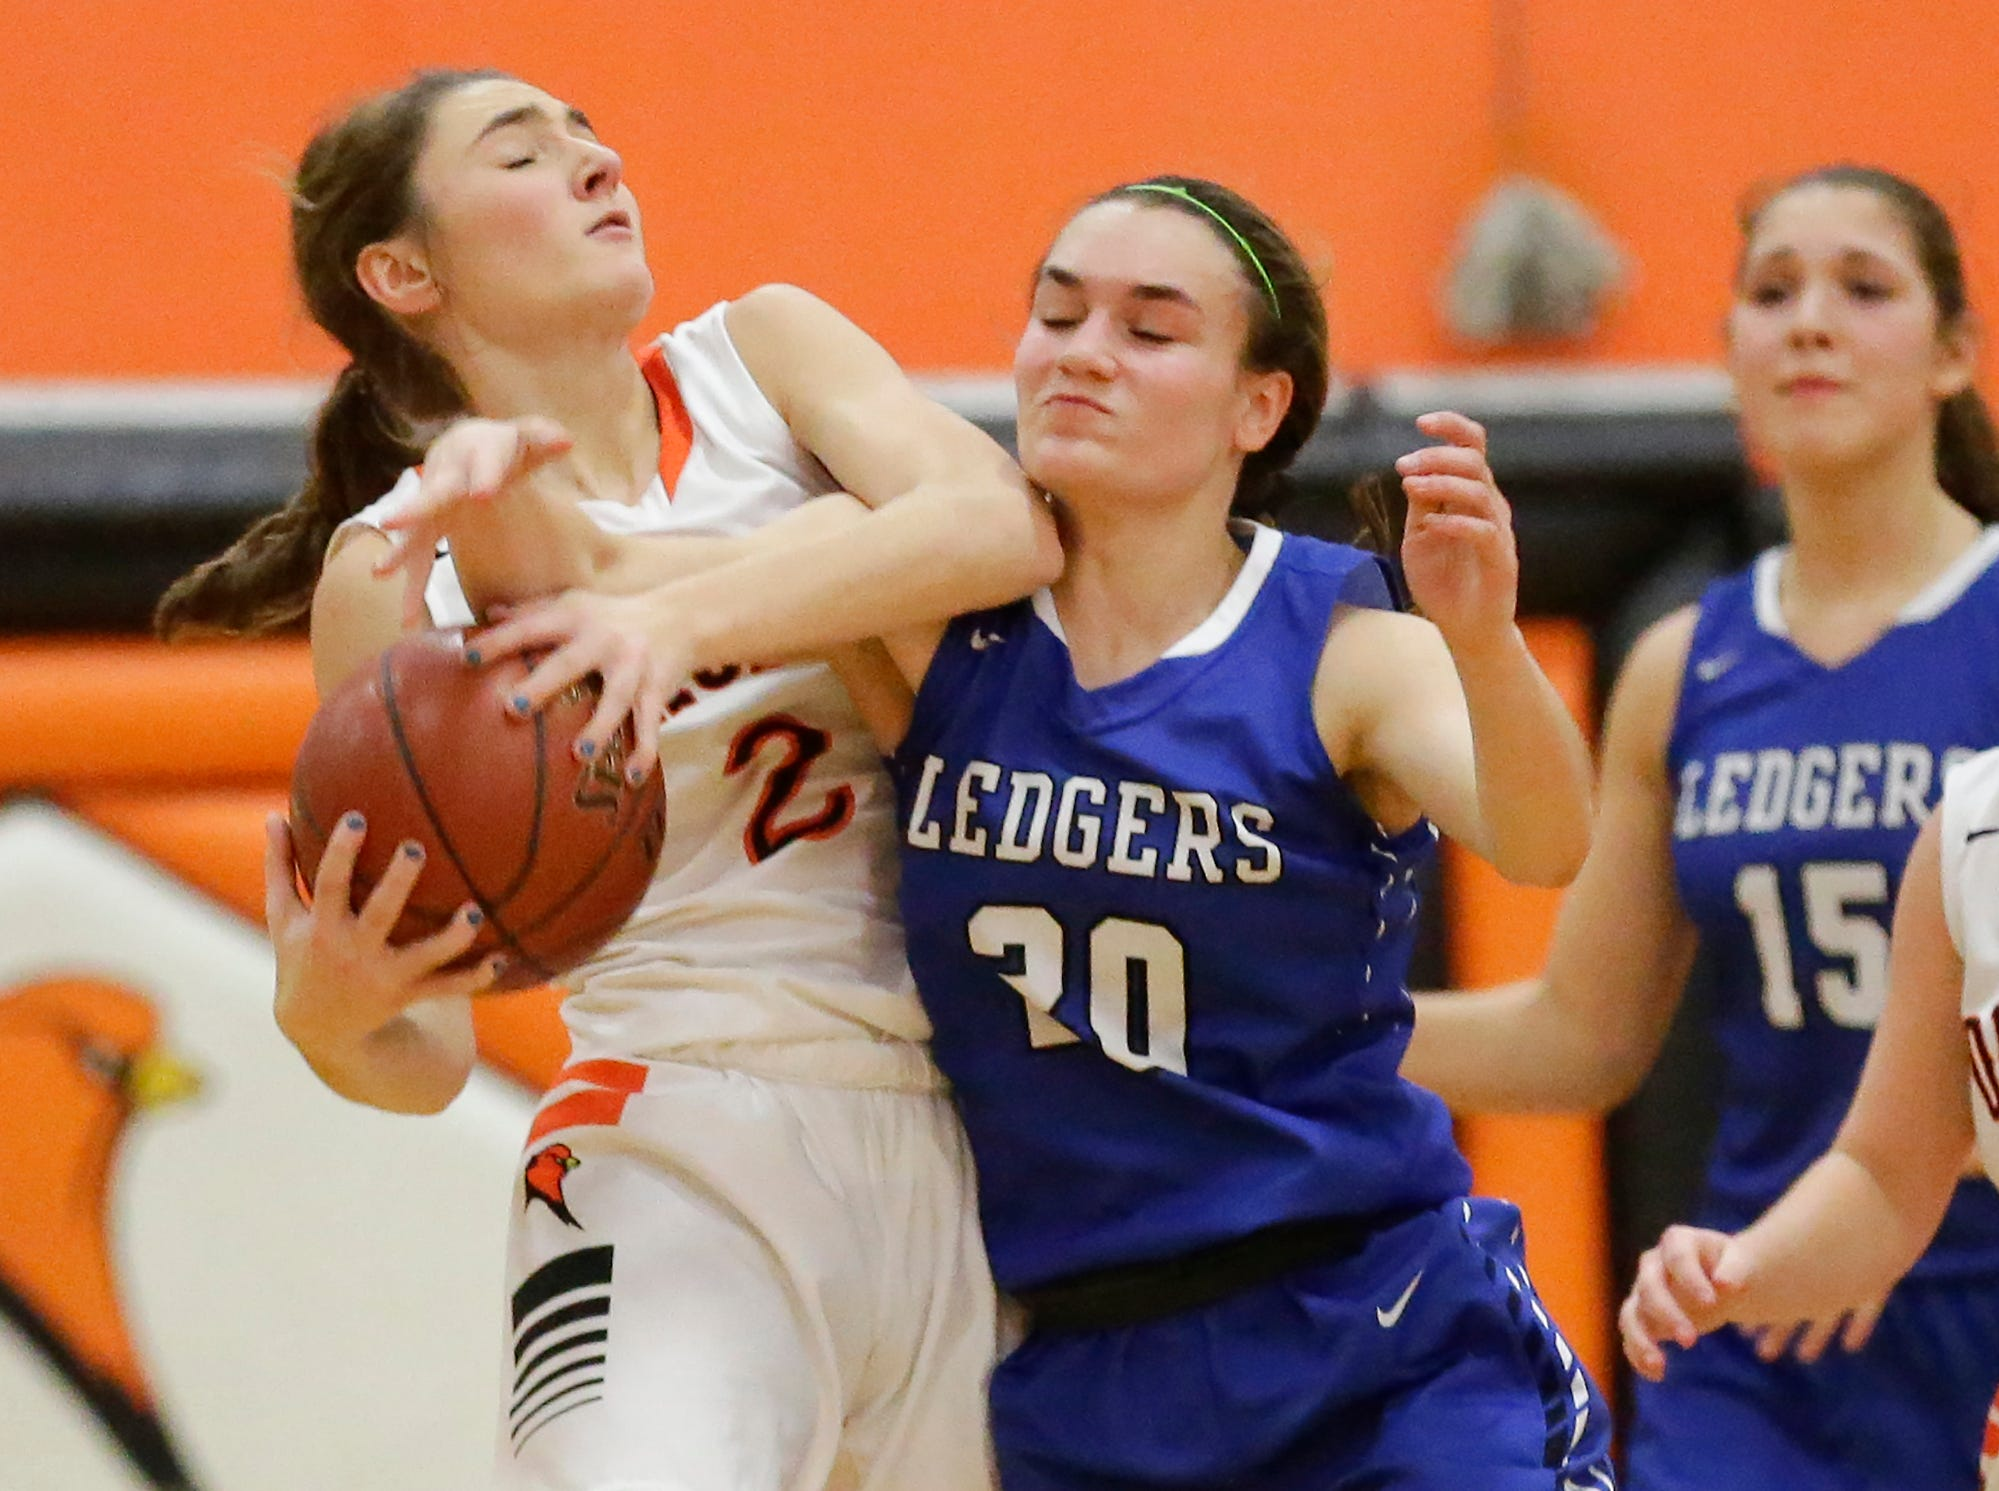 St. Mary's Springs Academy girls basketball's Jenna Gilgenbach fouls North Fond du Lac High School's Ashley Now during their game Friday, January 4, 2019 in North Fond du lac. Doug Raflik/USA TODAY NETWORK-Wisconsin